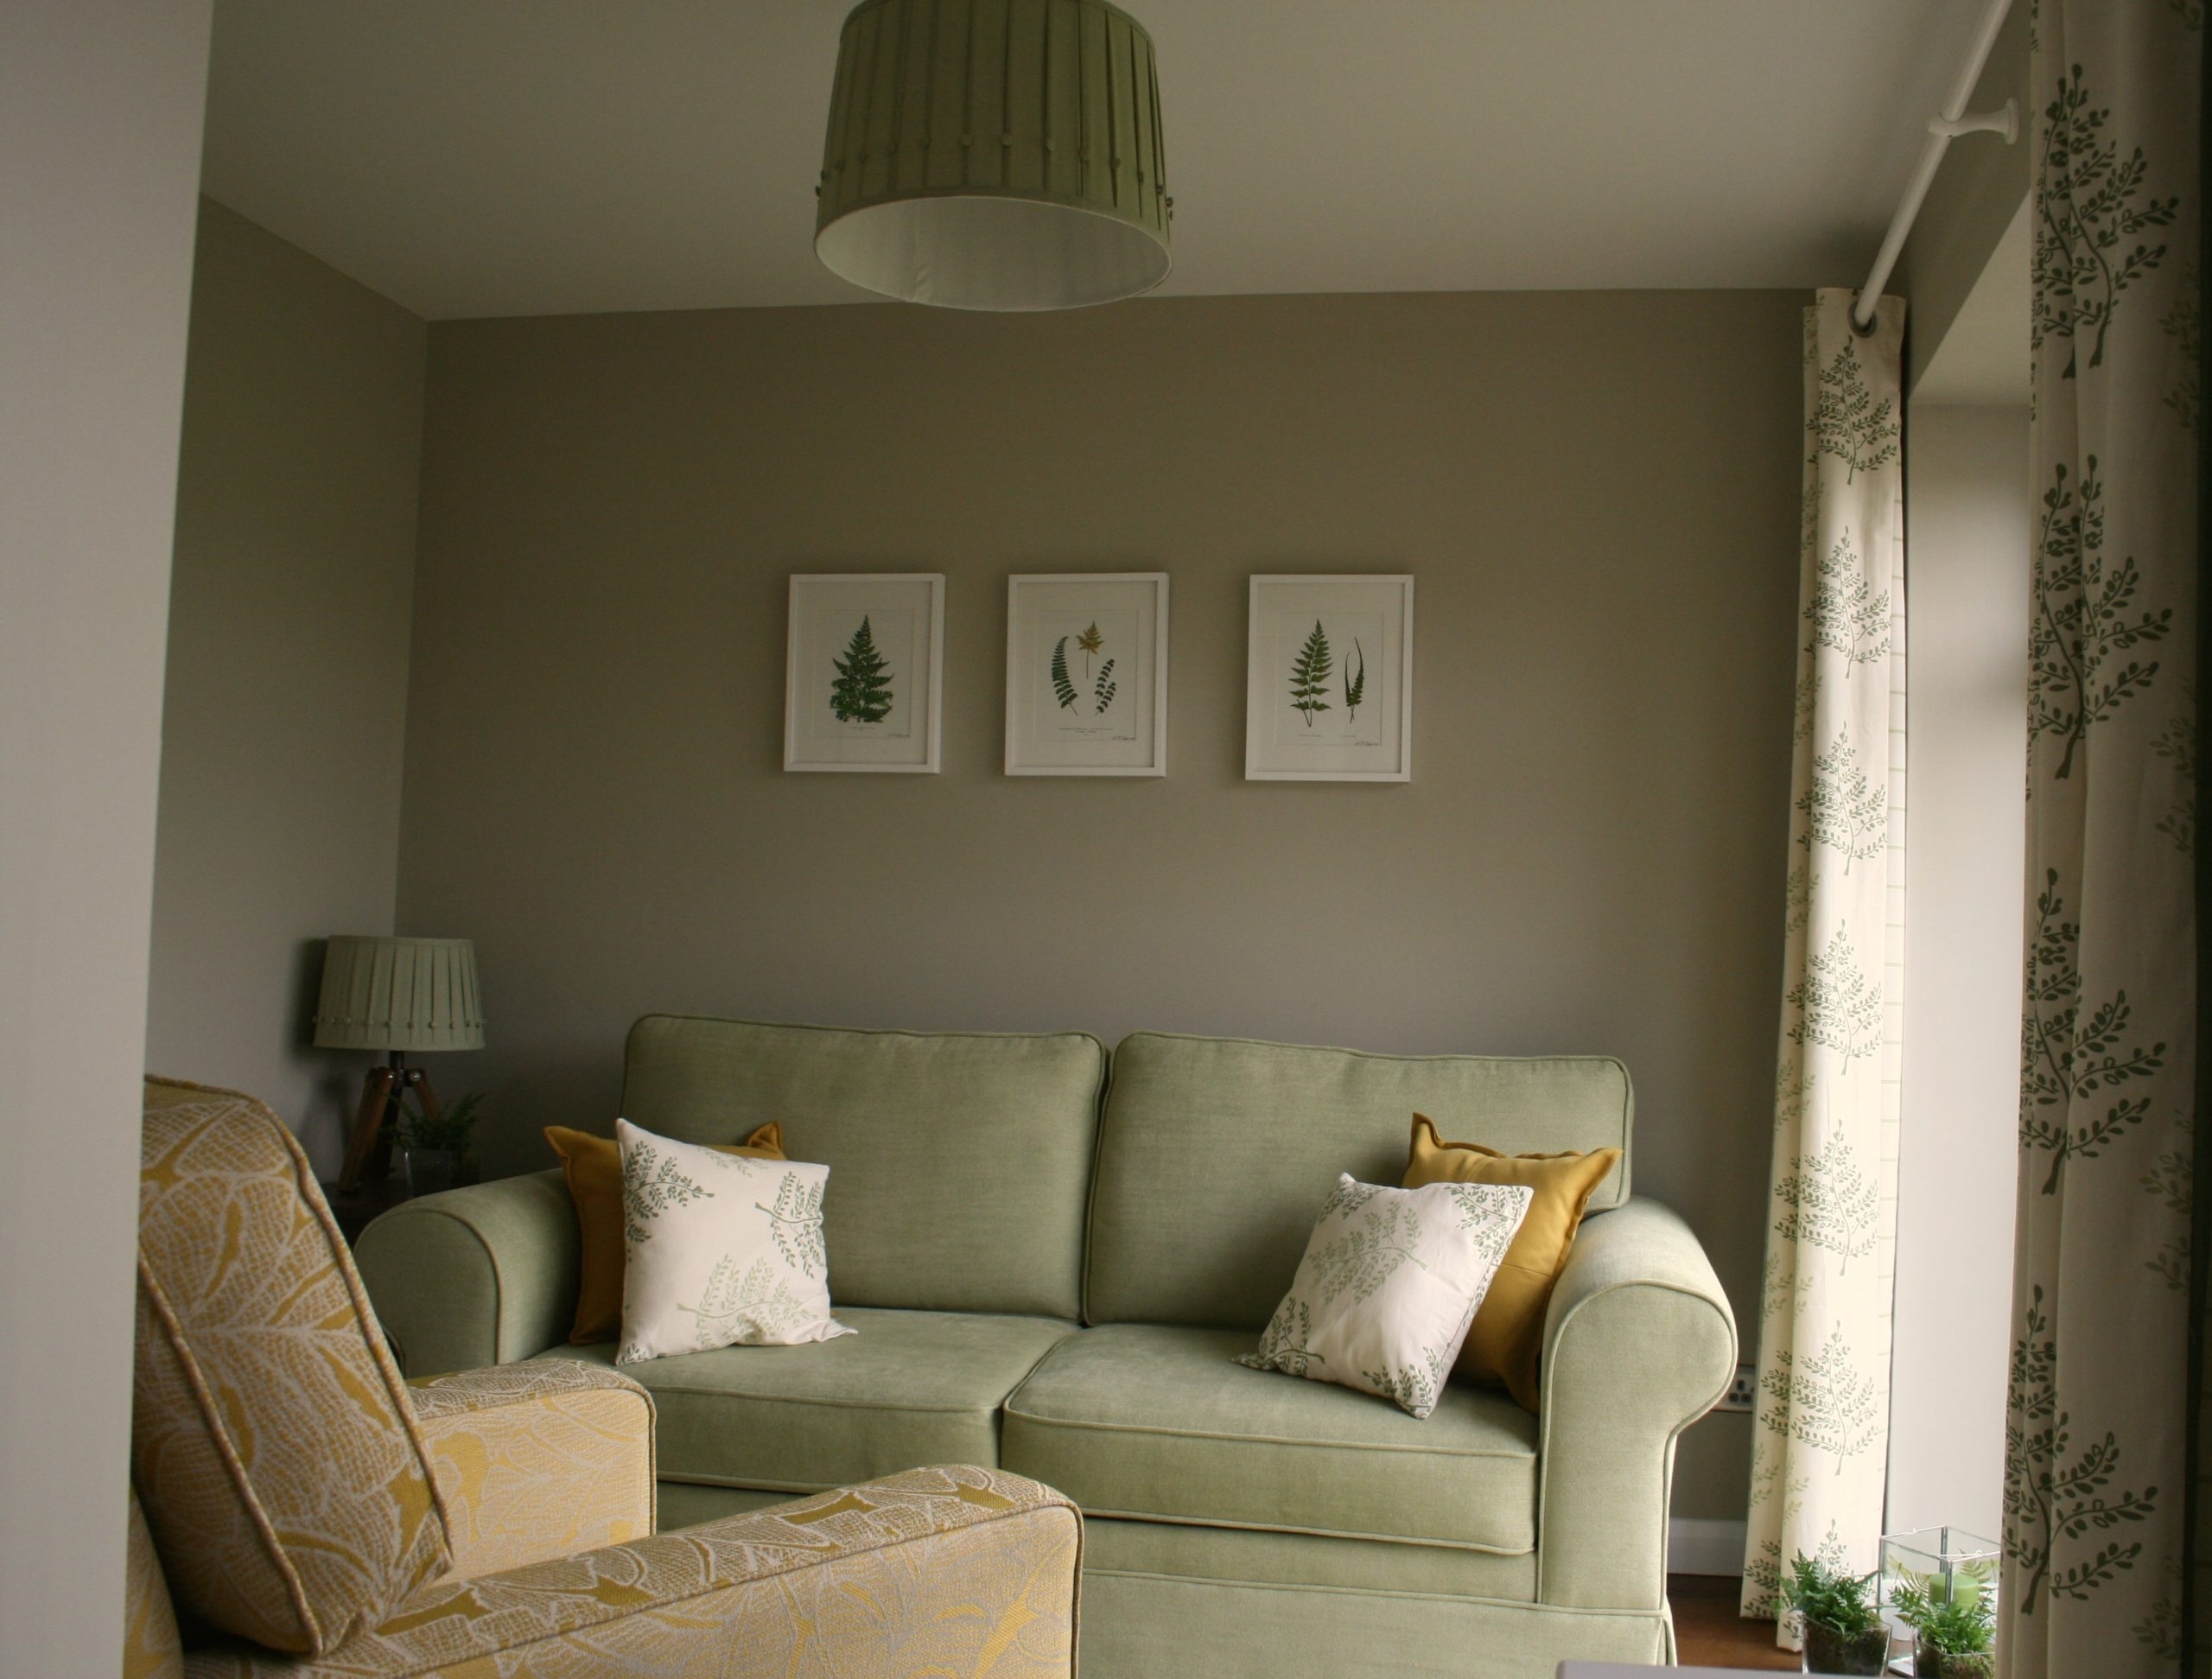 Before and after images from bedroom makeover by Amelia Wilson Interiors Interior Designer